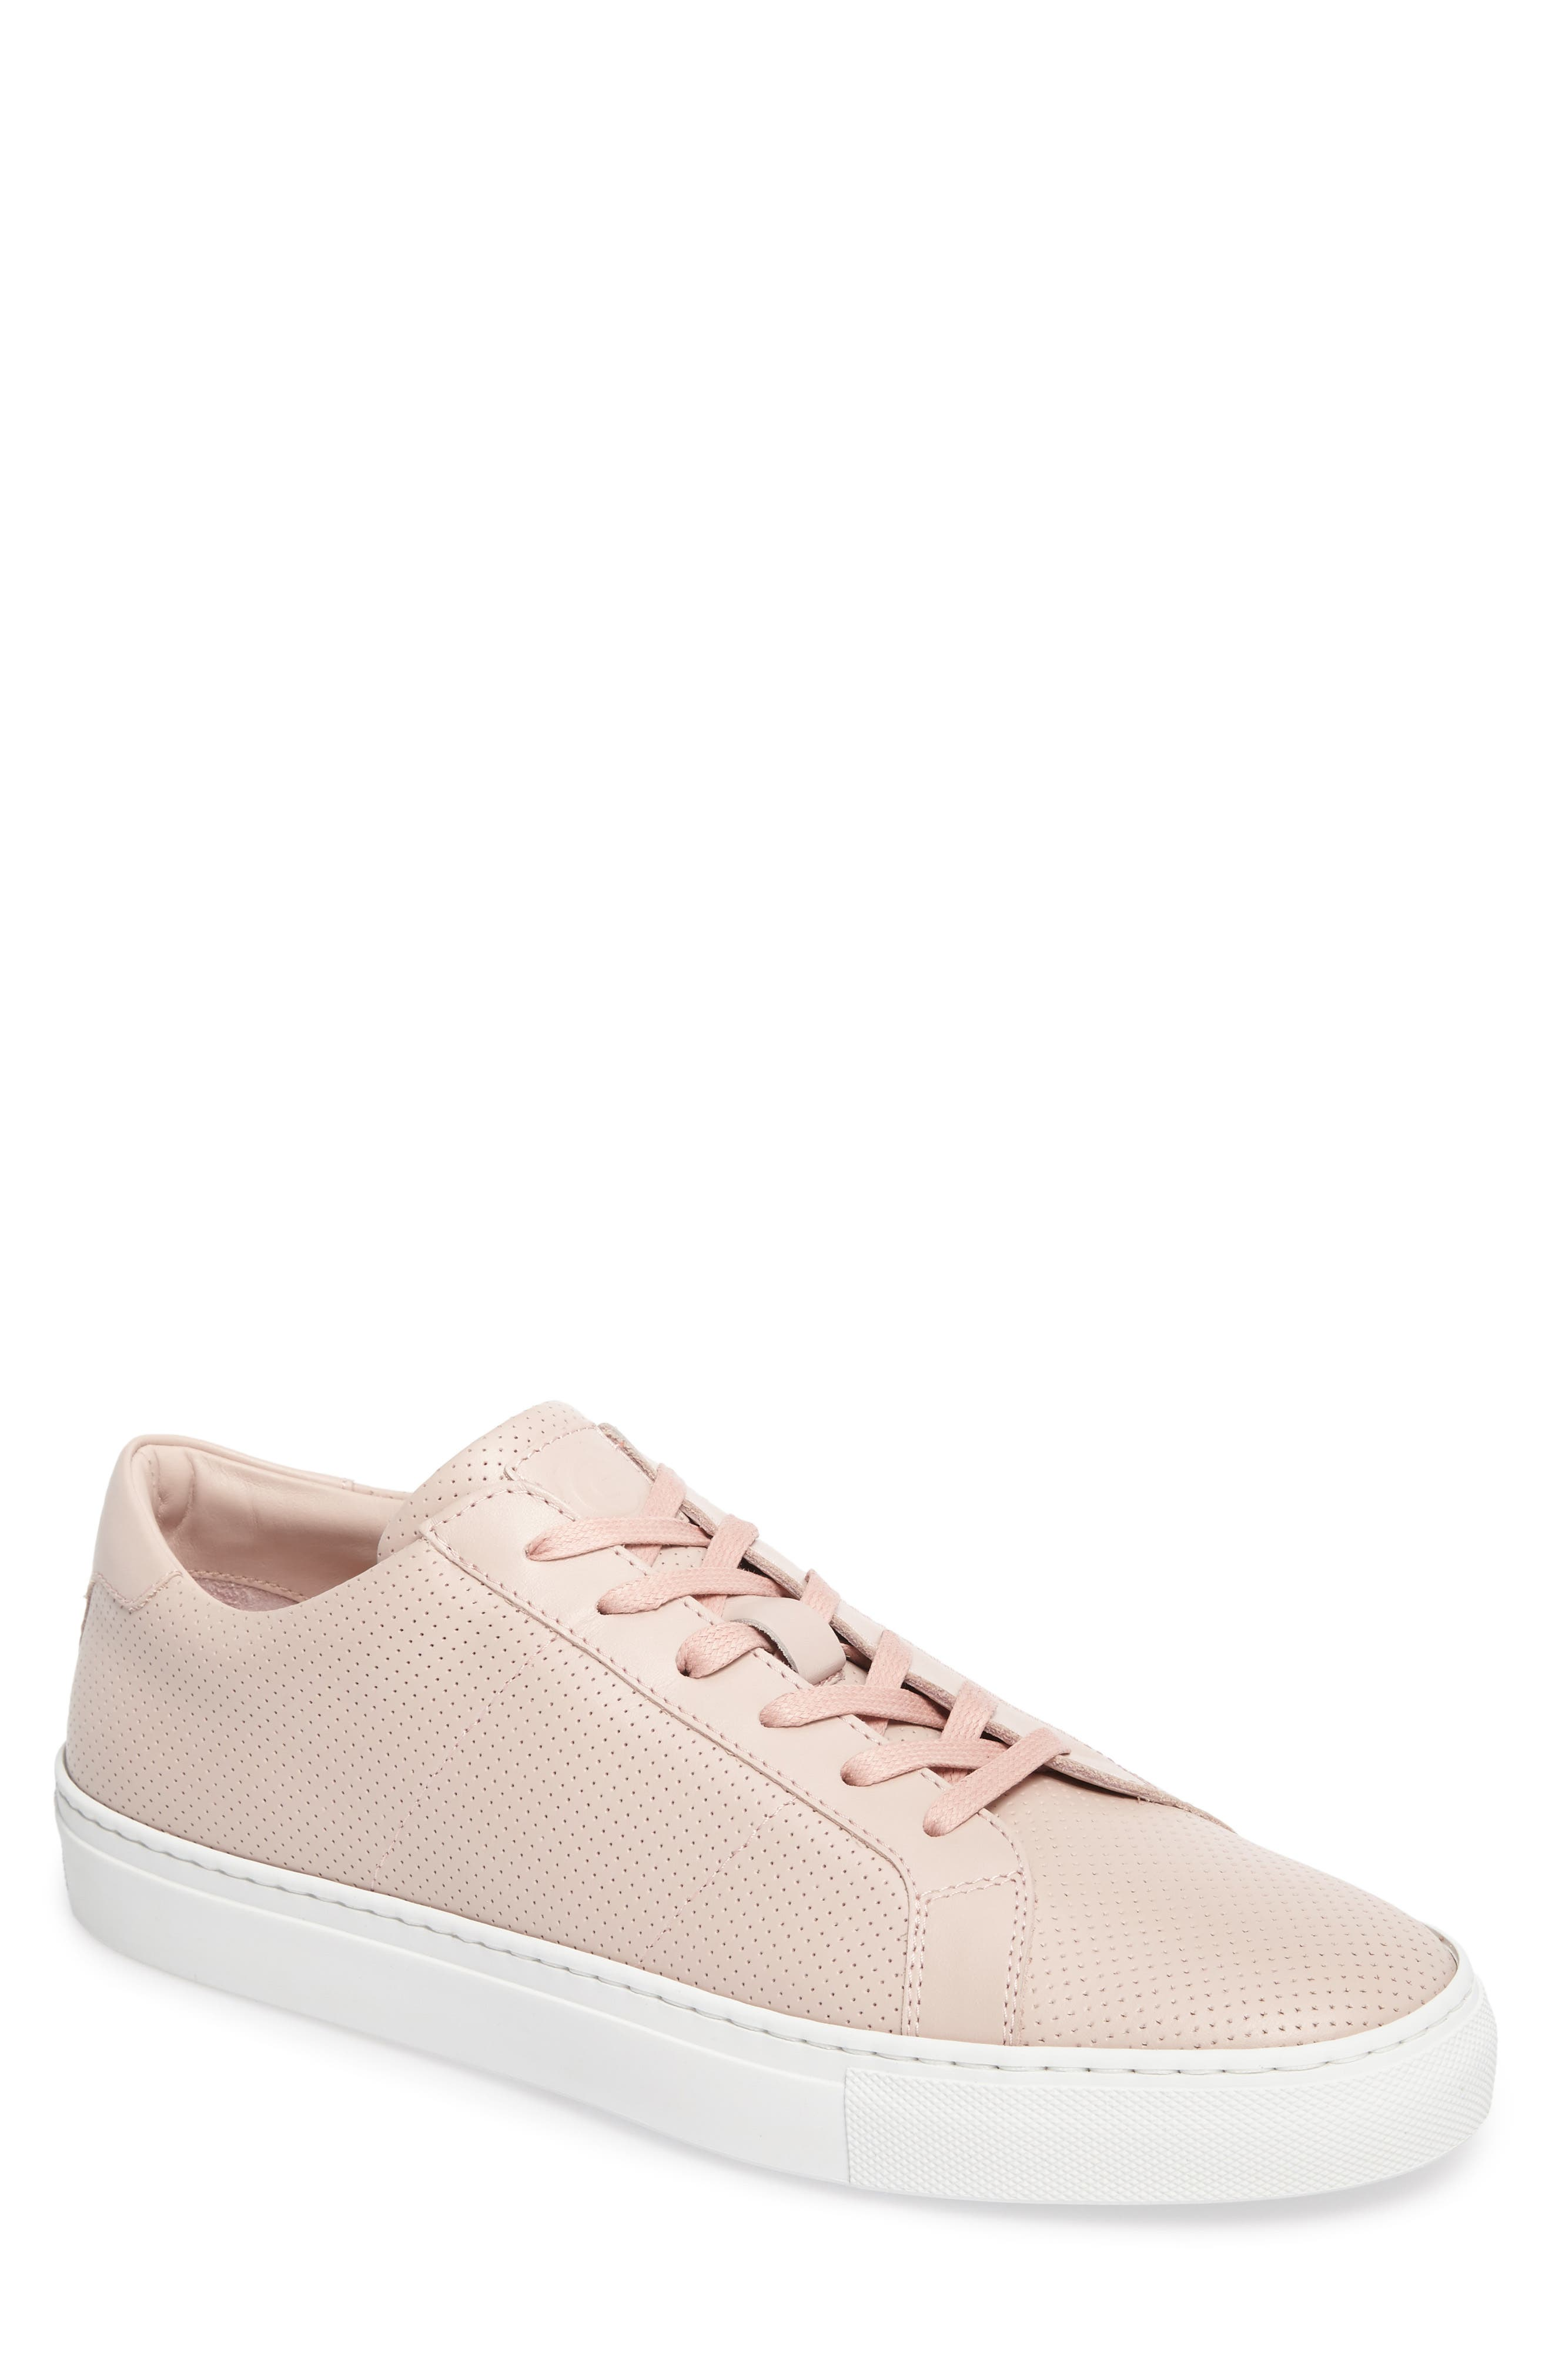 Royale Perforated Low Top Sneaker,                         Main,                         color, BLUSH PERFORATED LEATHER